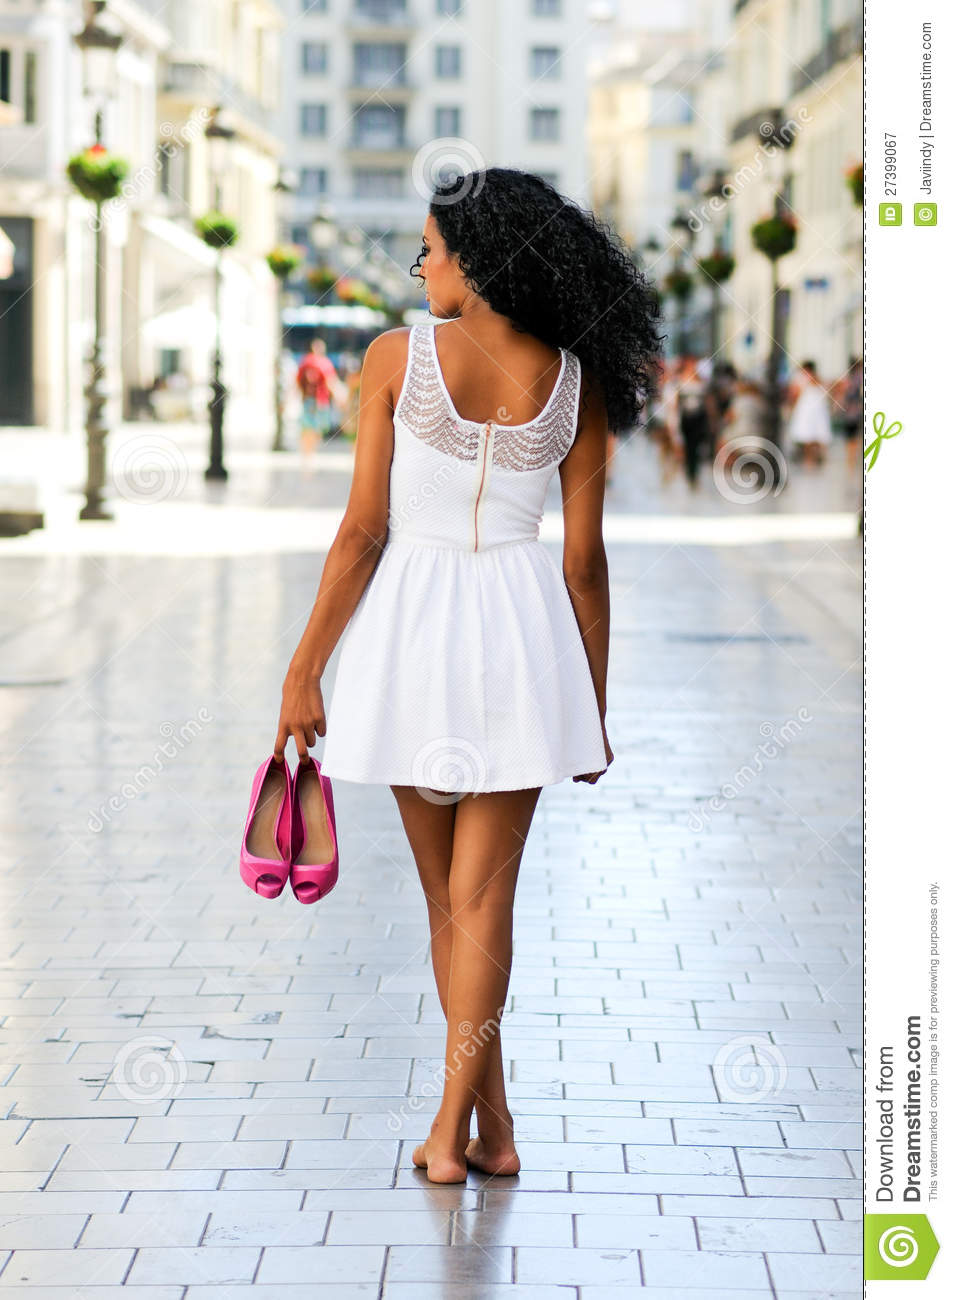 clipart girl walking